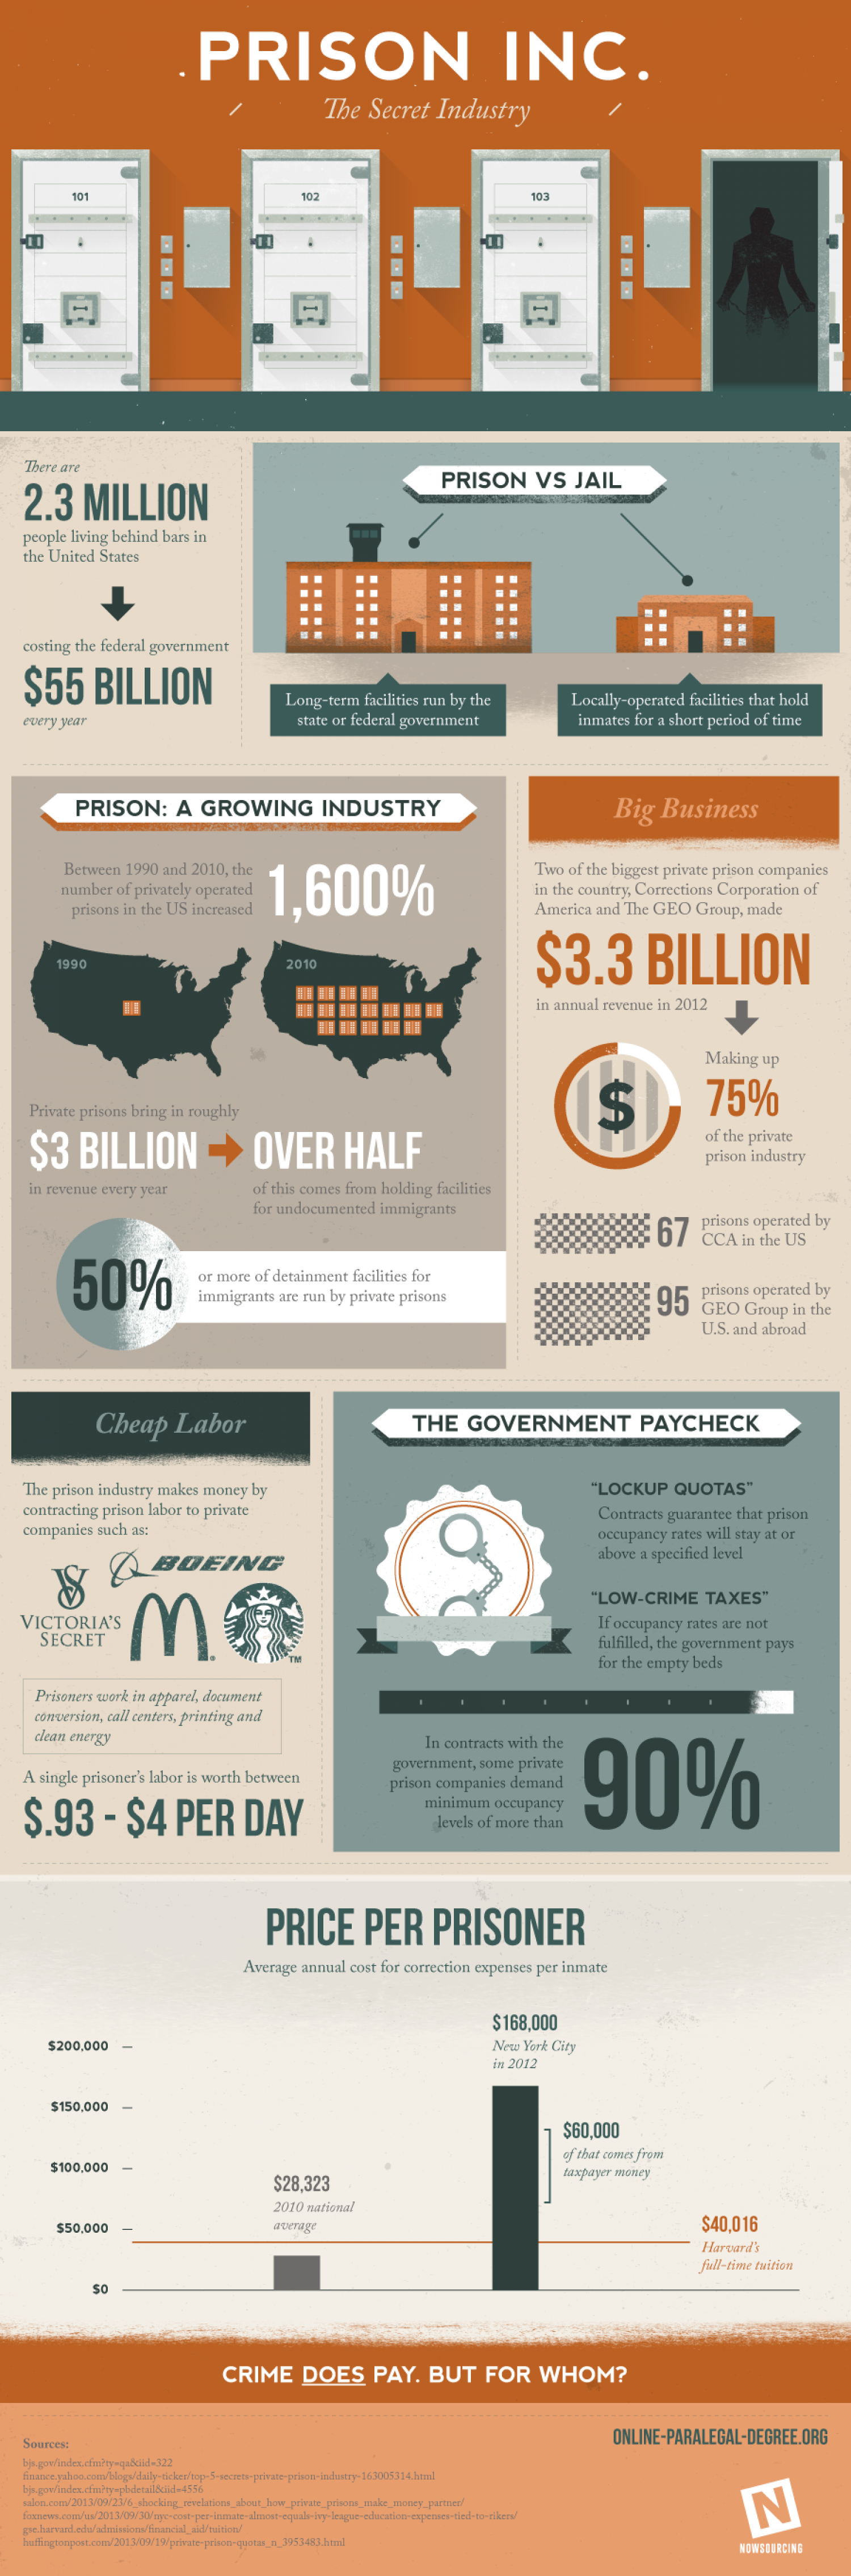 Prison, Inc - The Secret Industry Infographic